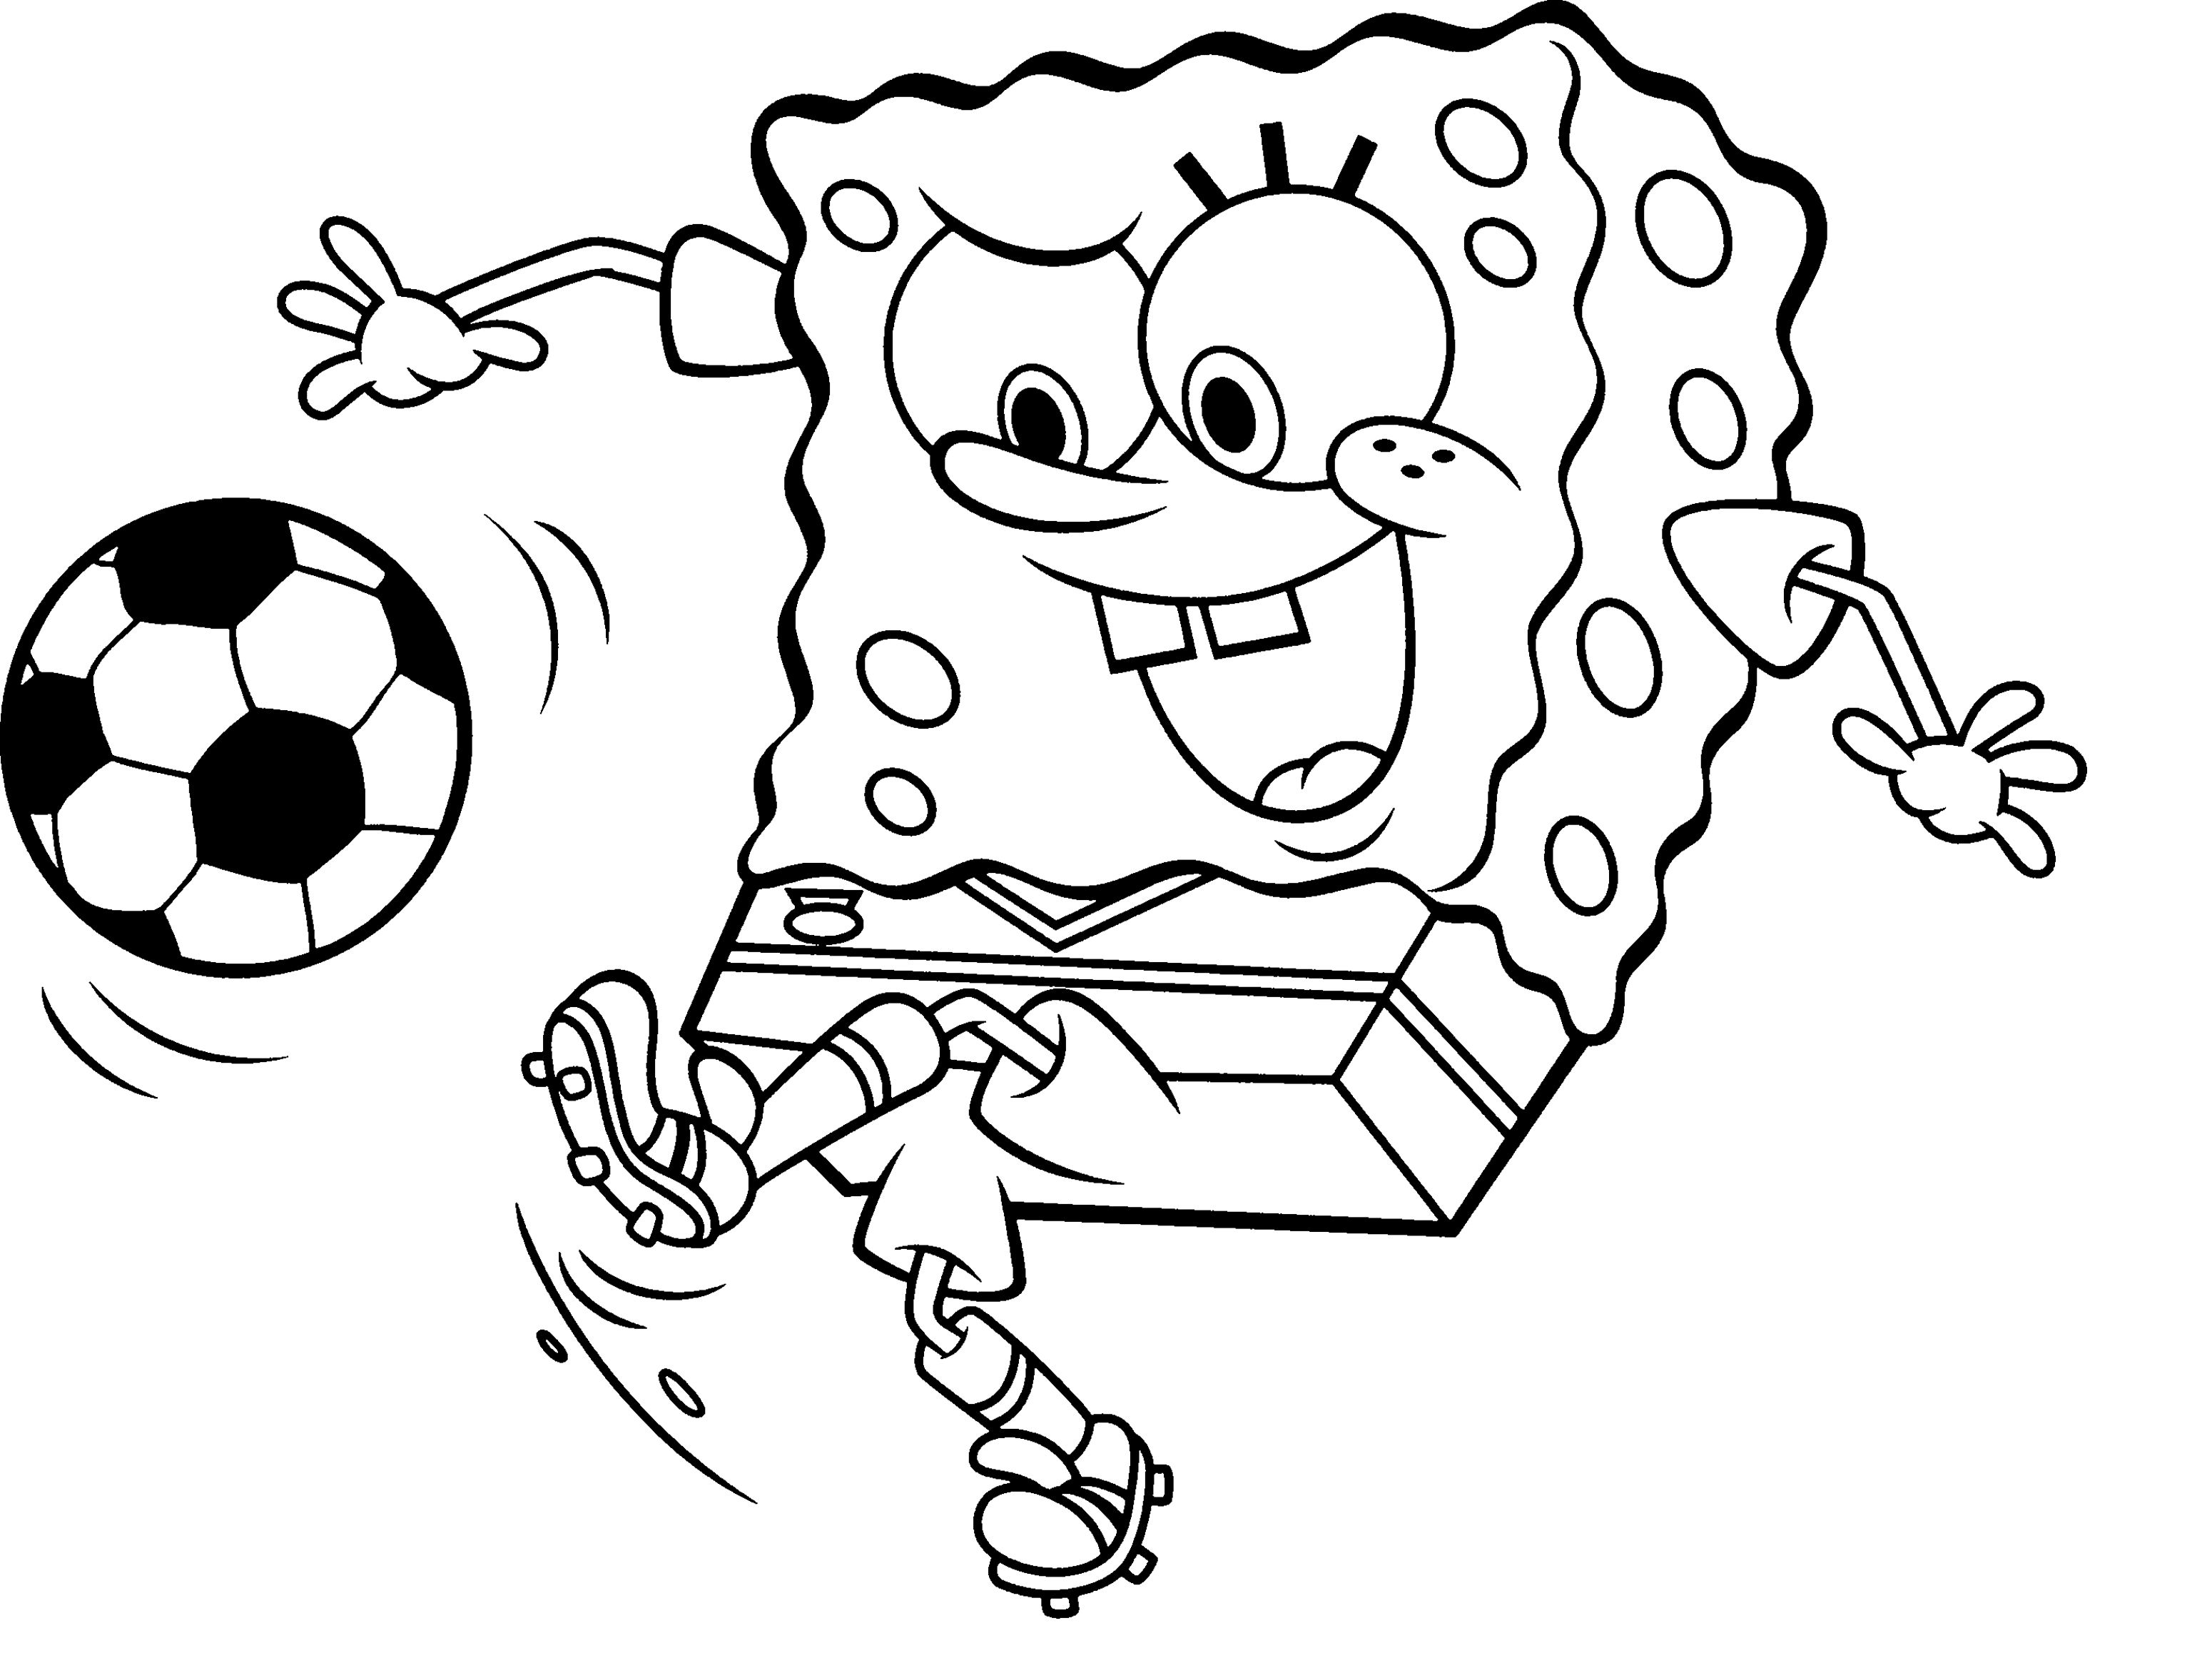 football color pages coloring page coloring pages for kids - Football Coloring Book